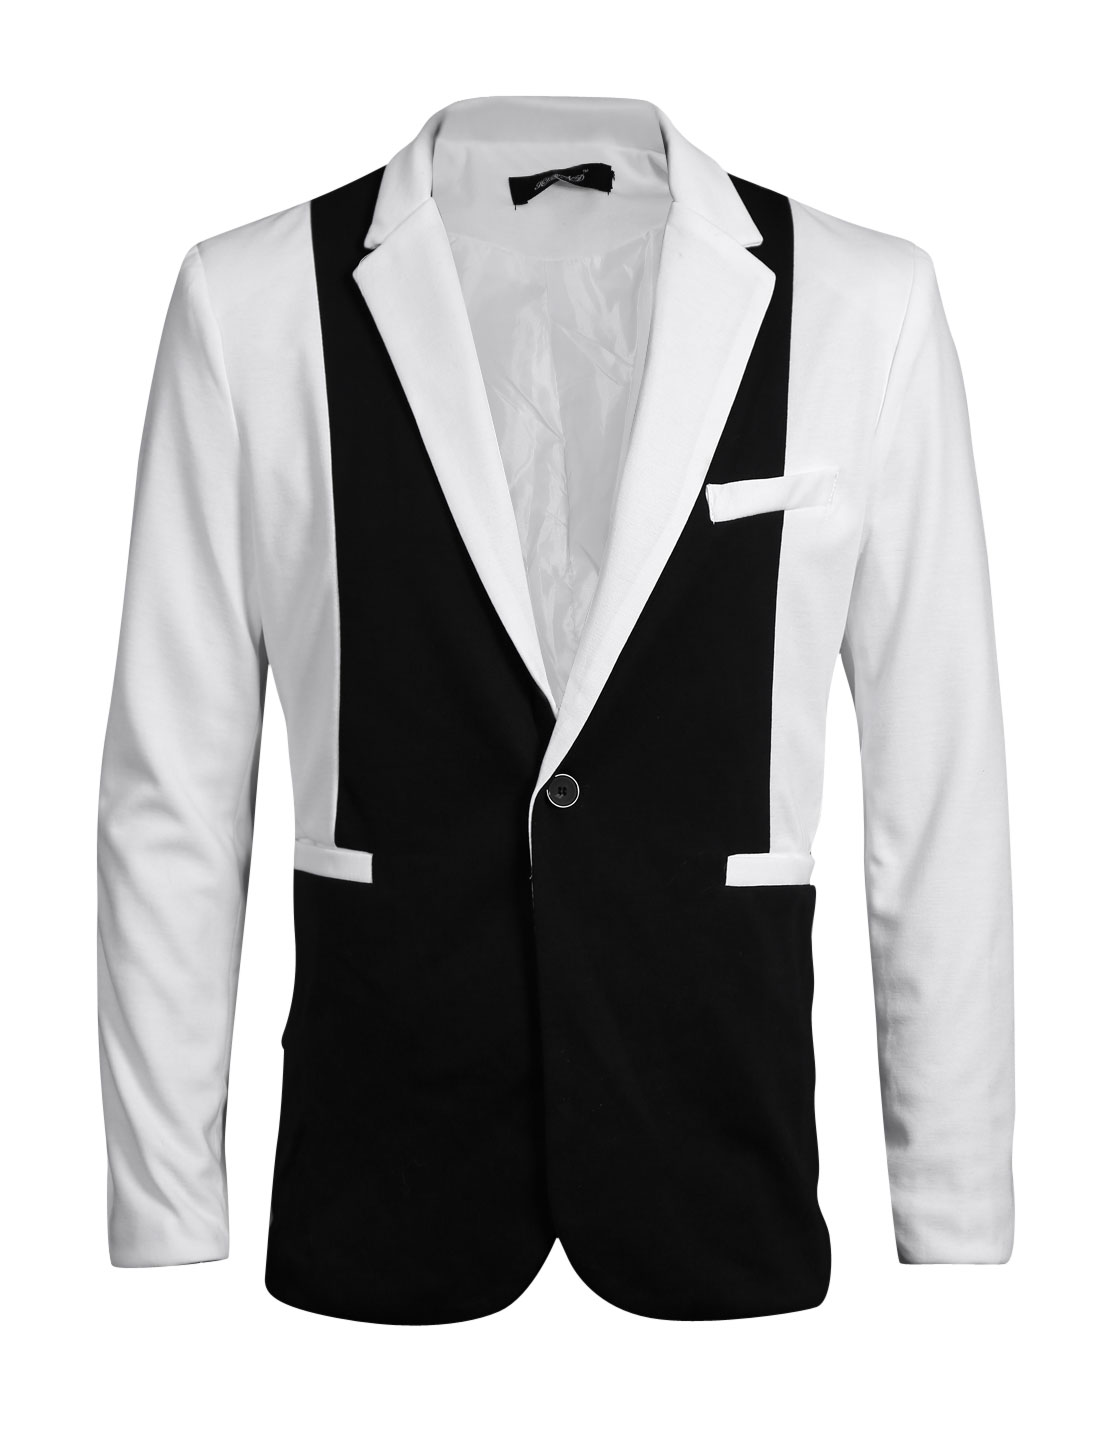 Men Notched Lapel Long Sleeves Color Blocked Chic Blazer Jacket White M